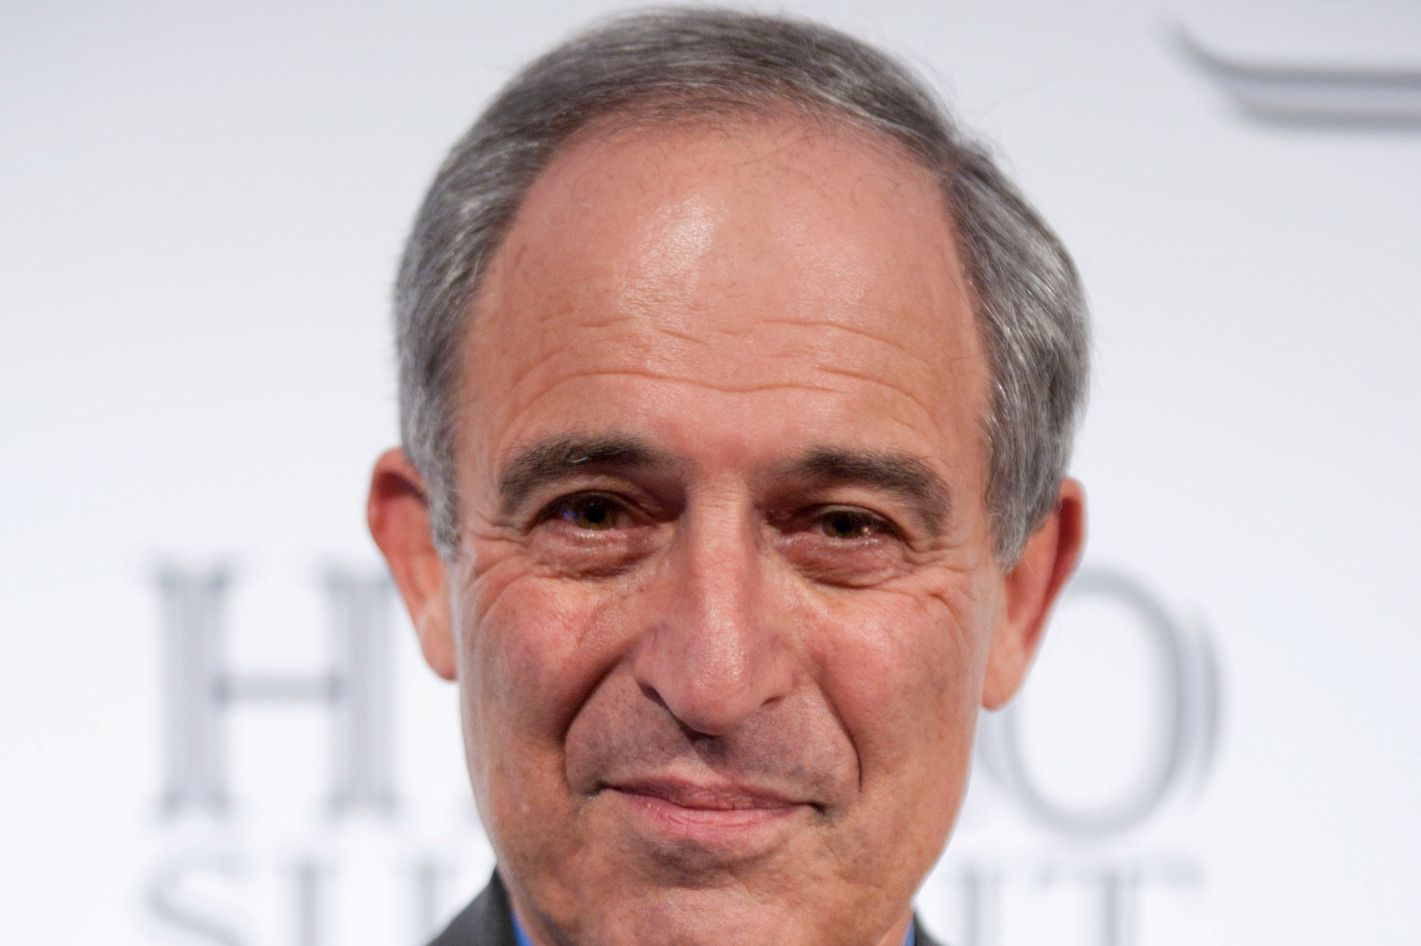 Lanny Davis attends the Newsweek & The Daily Beast 2012 Hero Summit at the United States Institute of Peace on November 14, 2012 in Washington, DC.